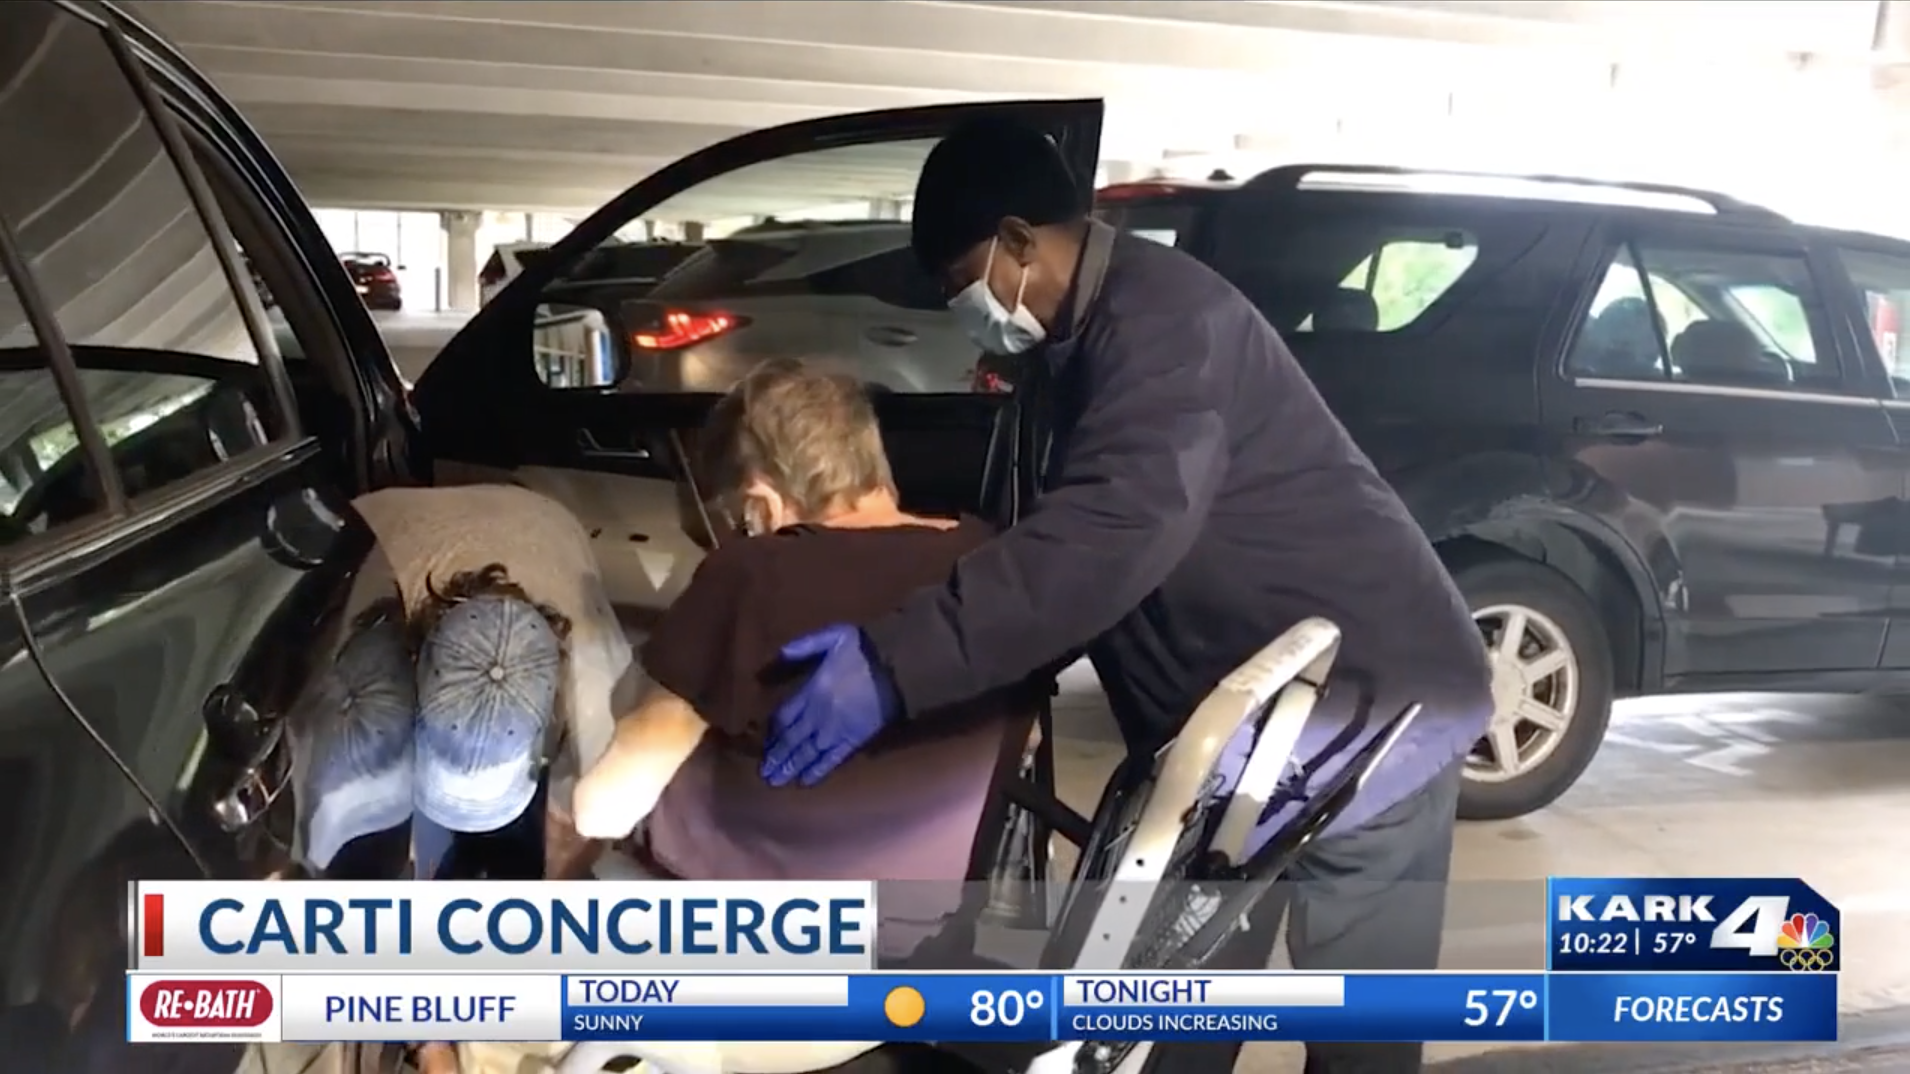 CARTI Concierge Staying Positive for Patients During Coronavirus